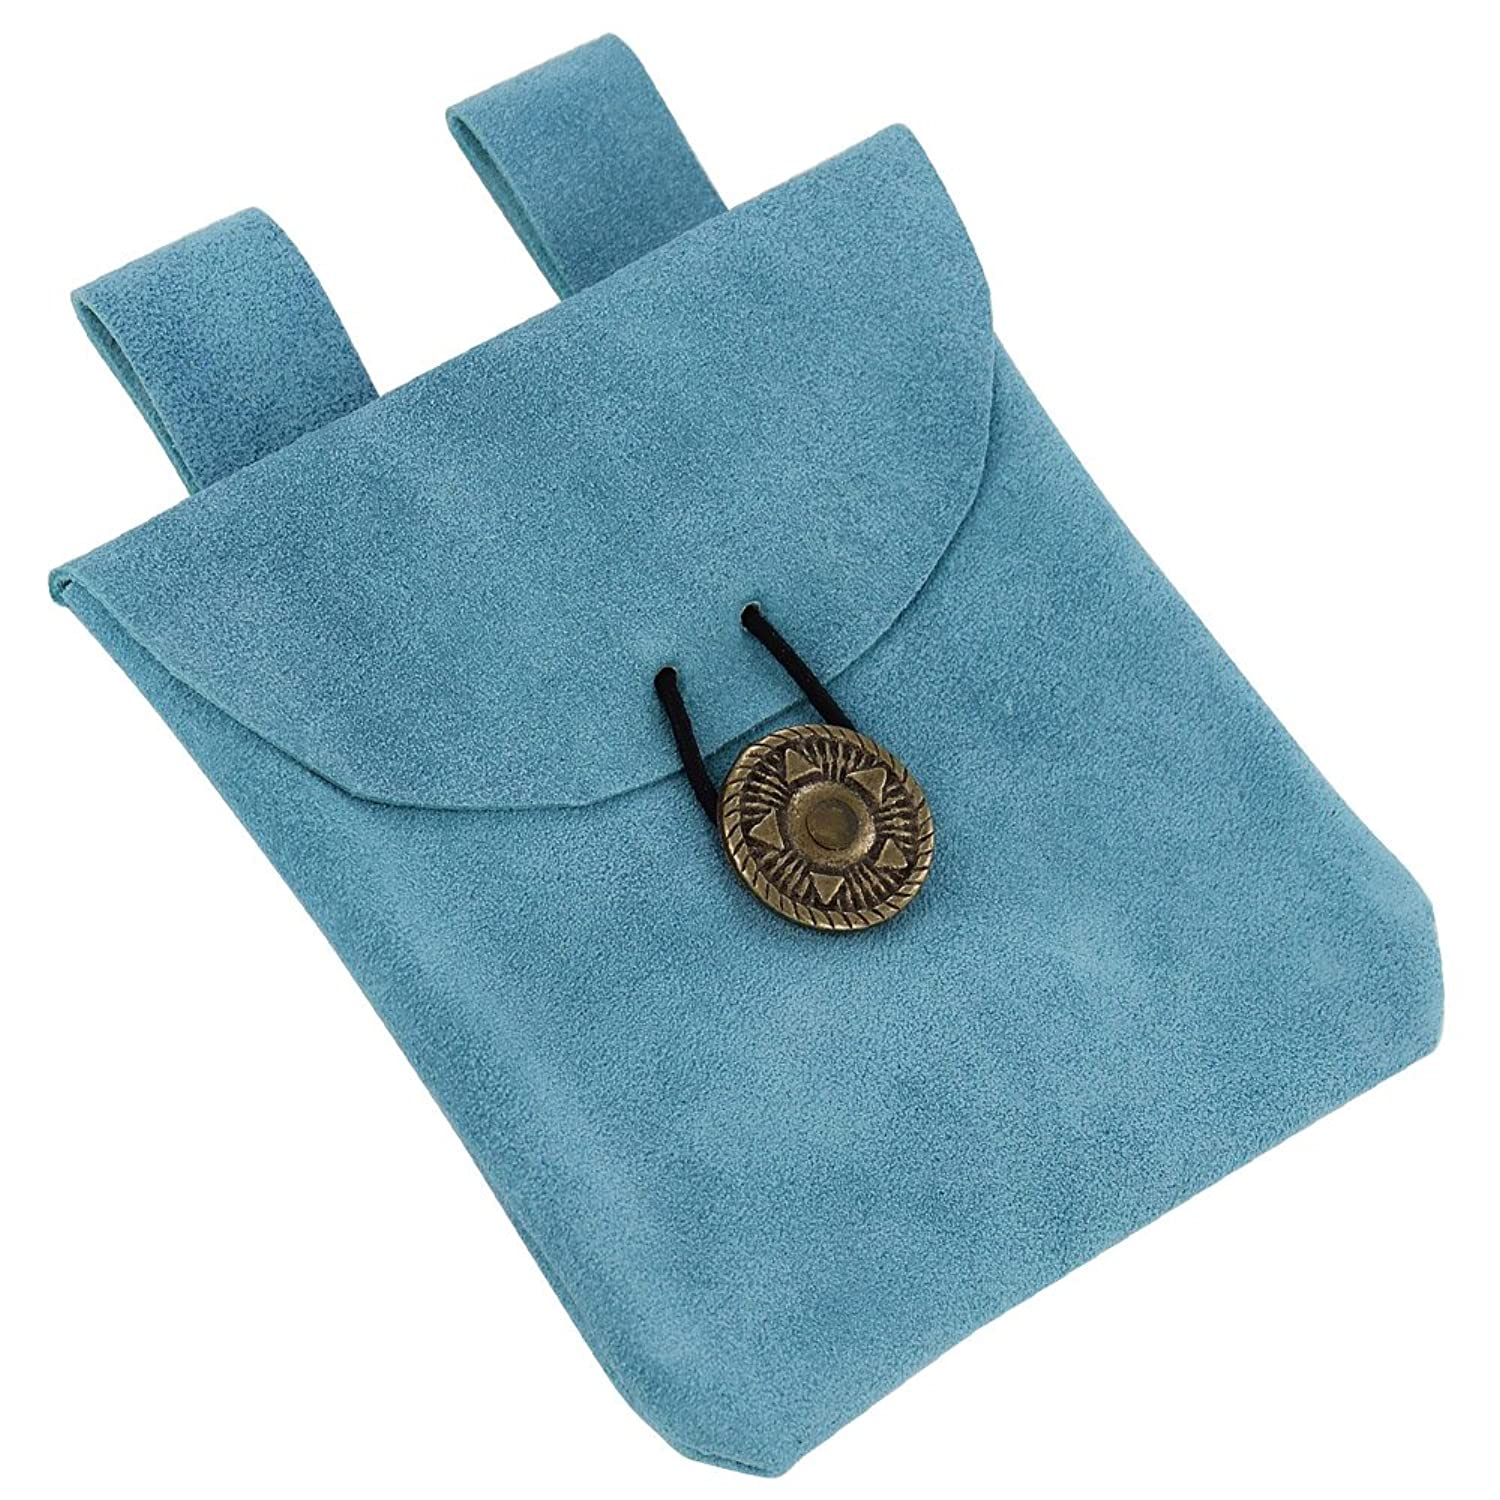 Deluxe Adult Costumes - Lights of the peaceful blues small suede pouch